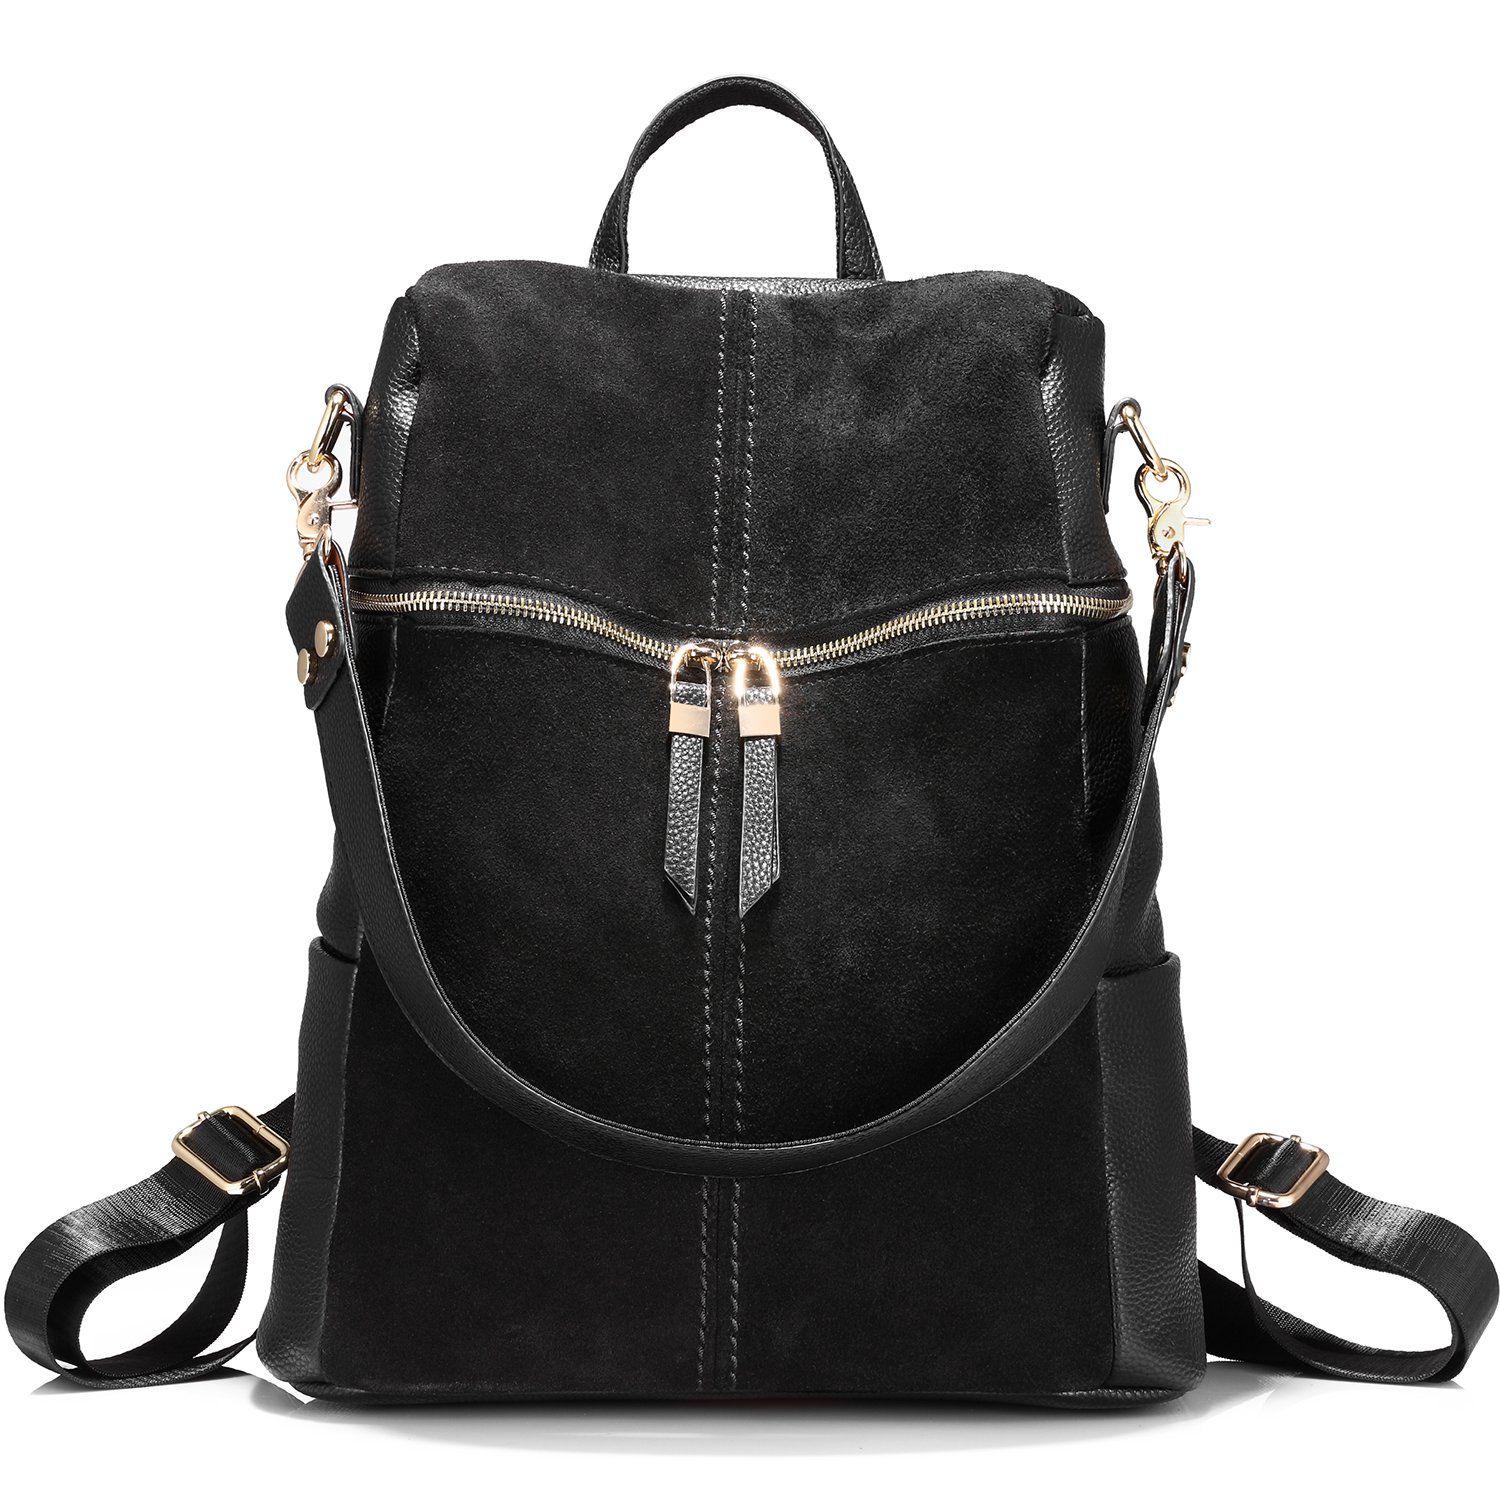 Backpack Shoulder Bag Purse Girls School Bag Casual Nubuck +Synthetic Leather Collage Style Black